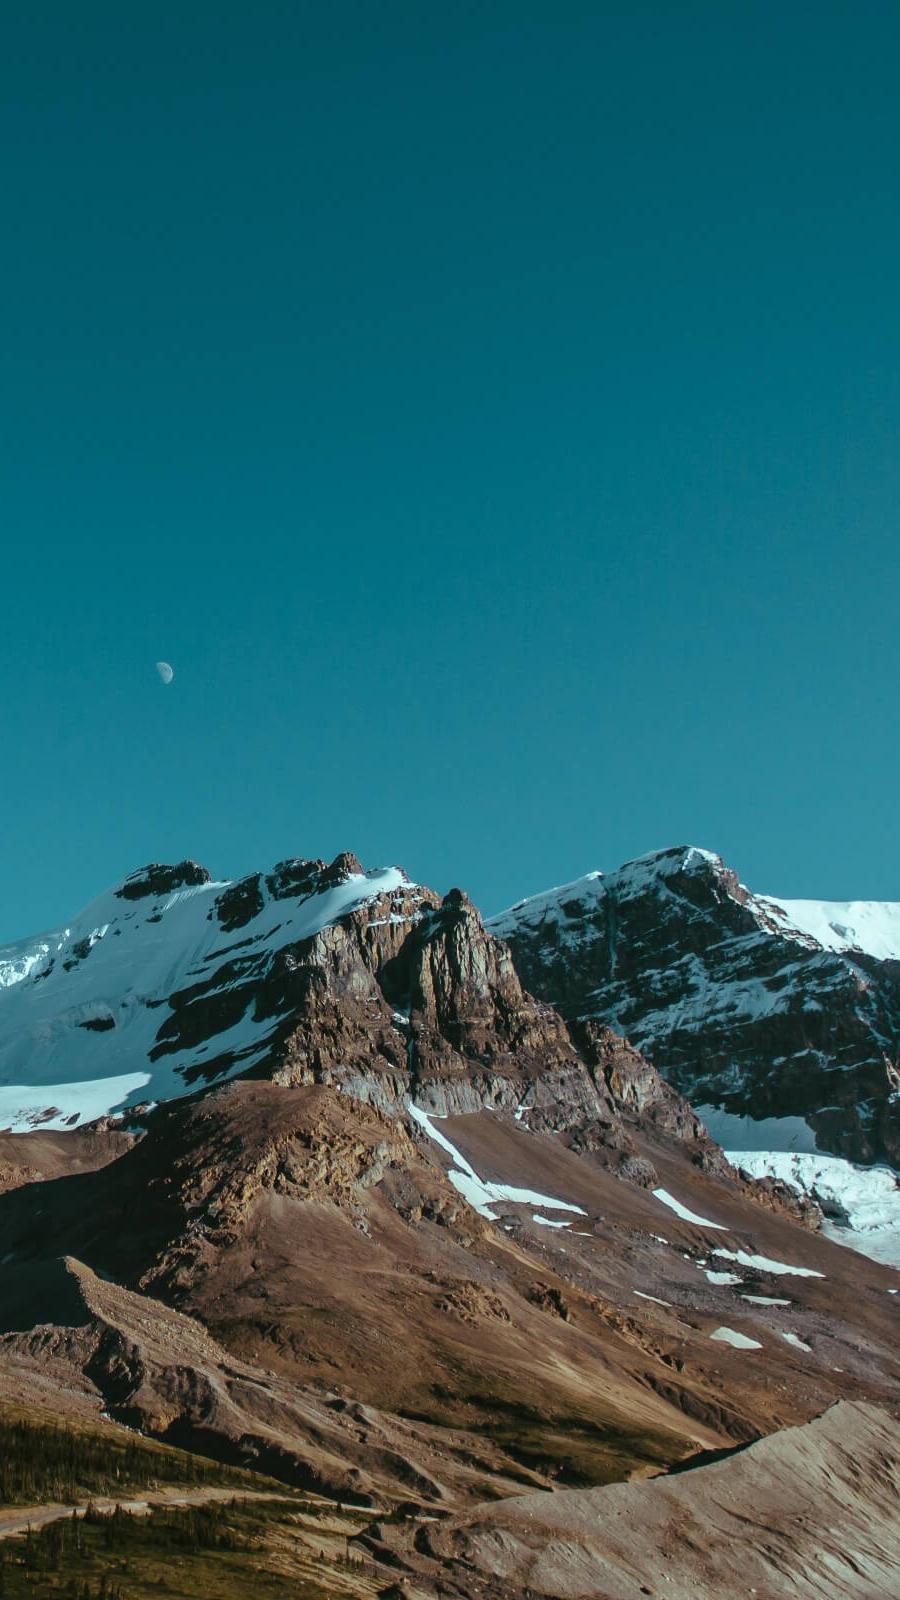 Jasper National Park Rocky Mountains Iphone Wallpaper